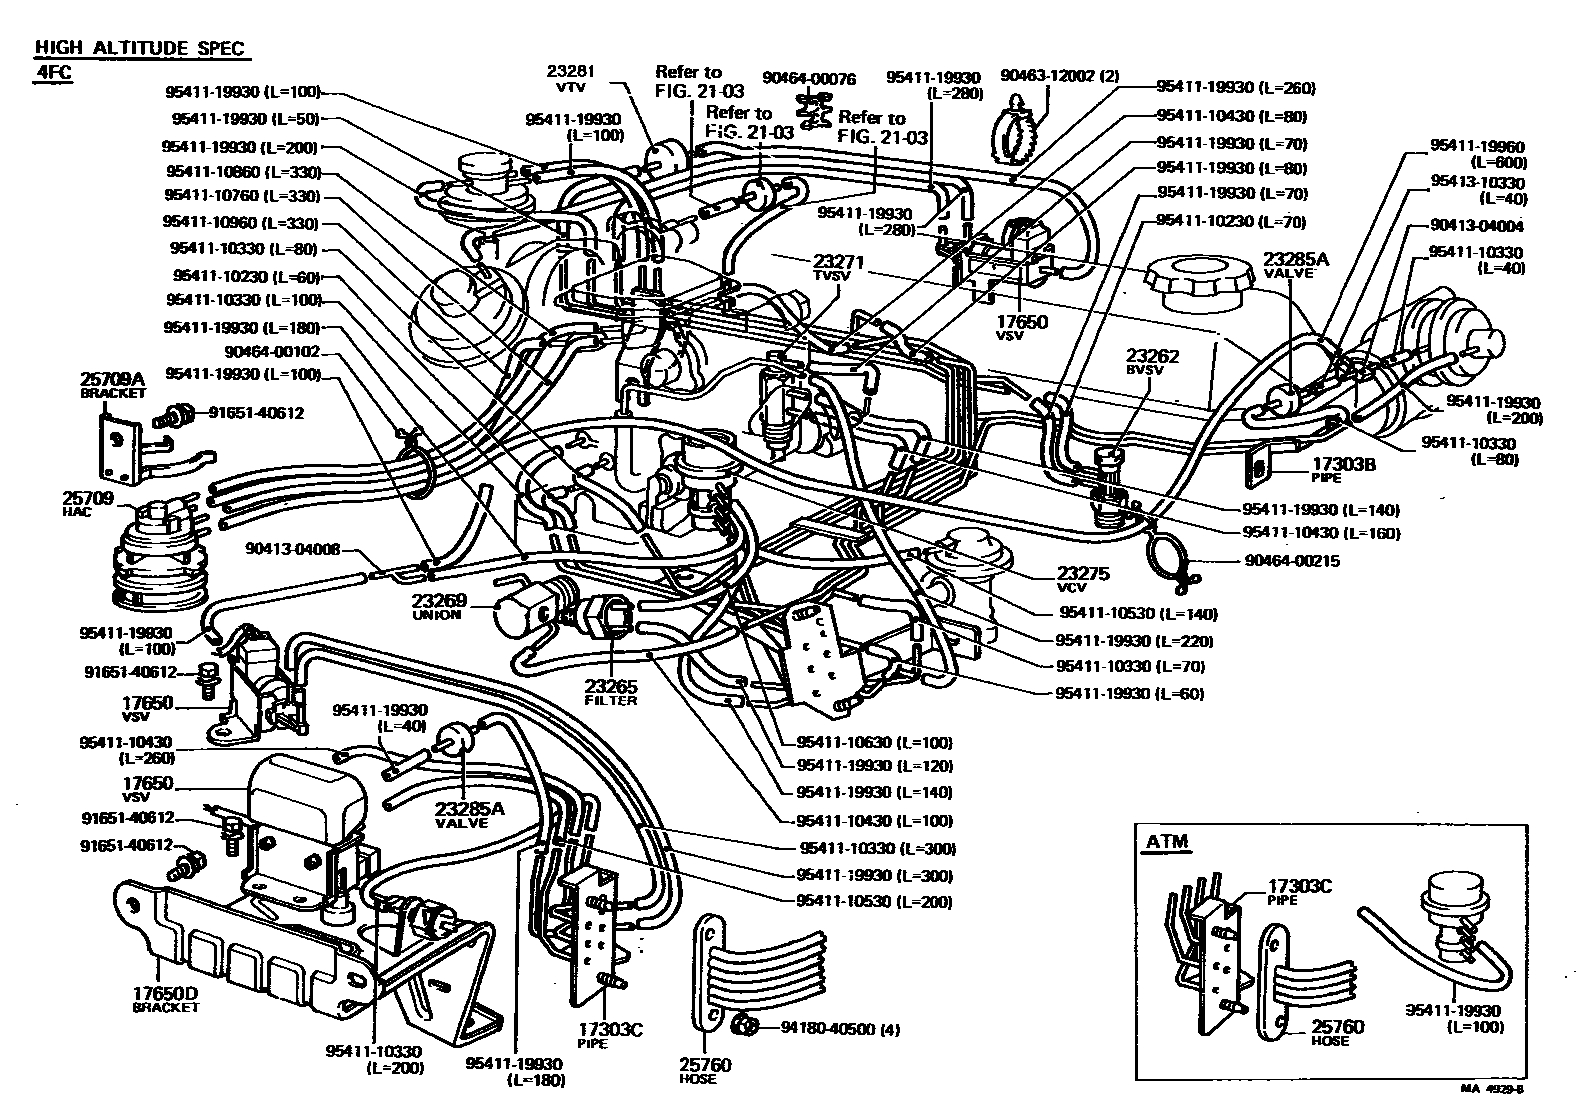 [DIAGRAM] 2001 Tundra Tail Light Wiring Diagram FULL